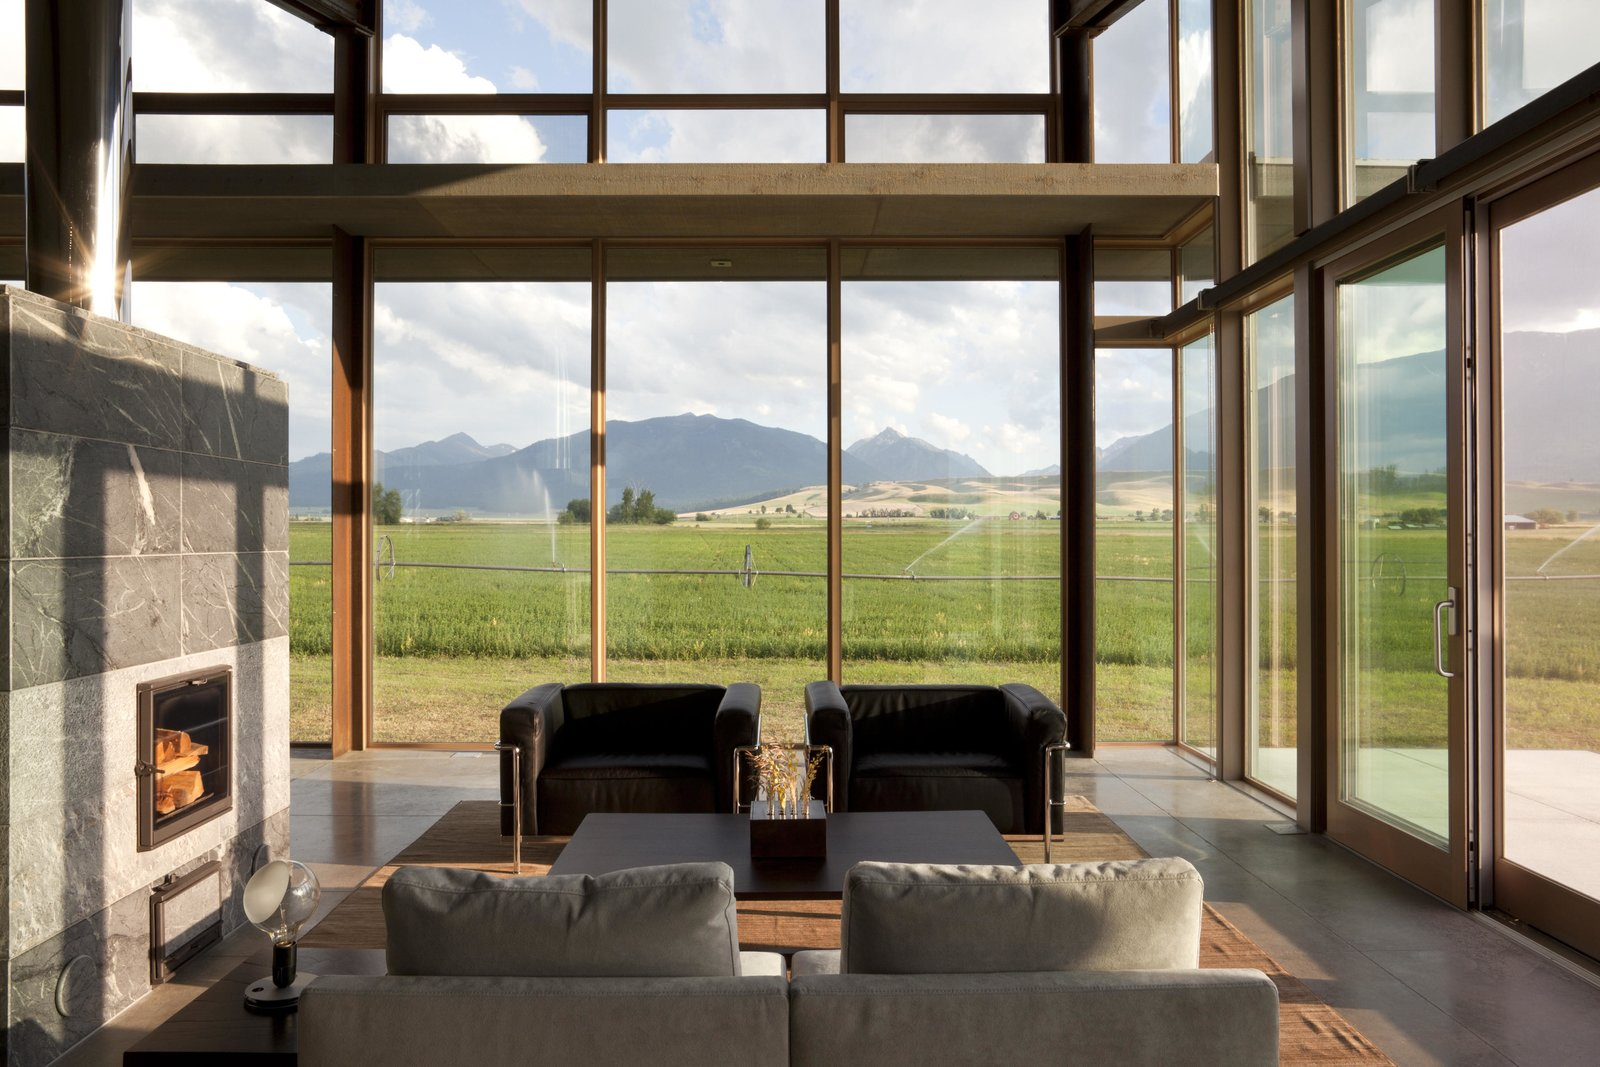 Glass Farmhouse | Olson Kundig  Glass Farmhouse by Olson Kundig